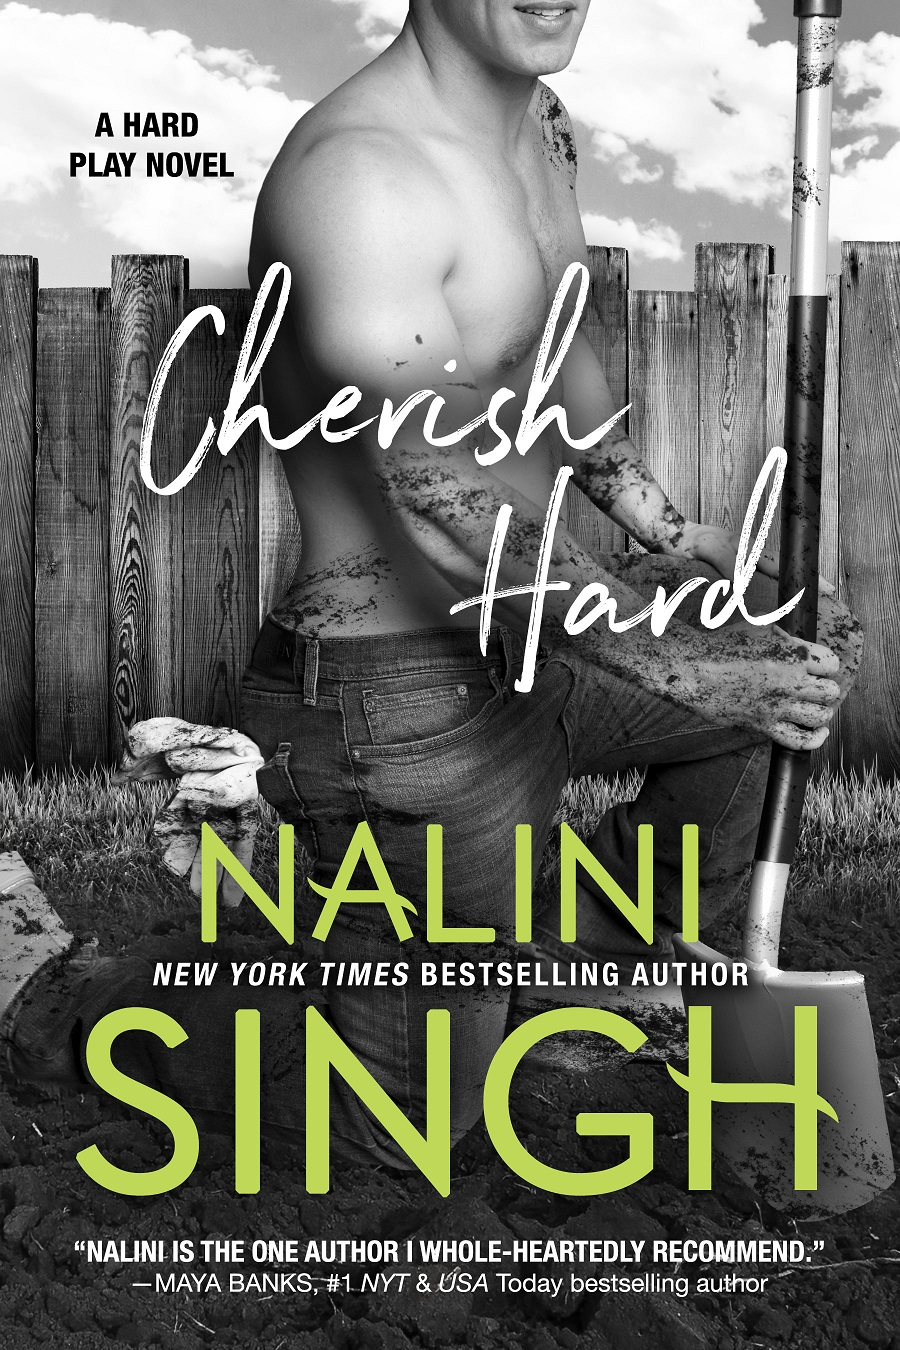 Cherish Hard (Hard Play, #1) by Nalini Singh